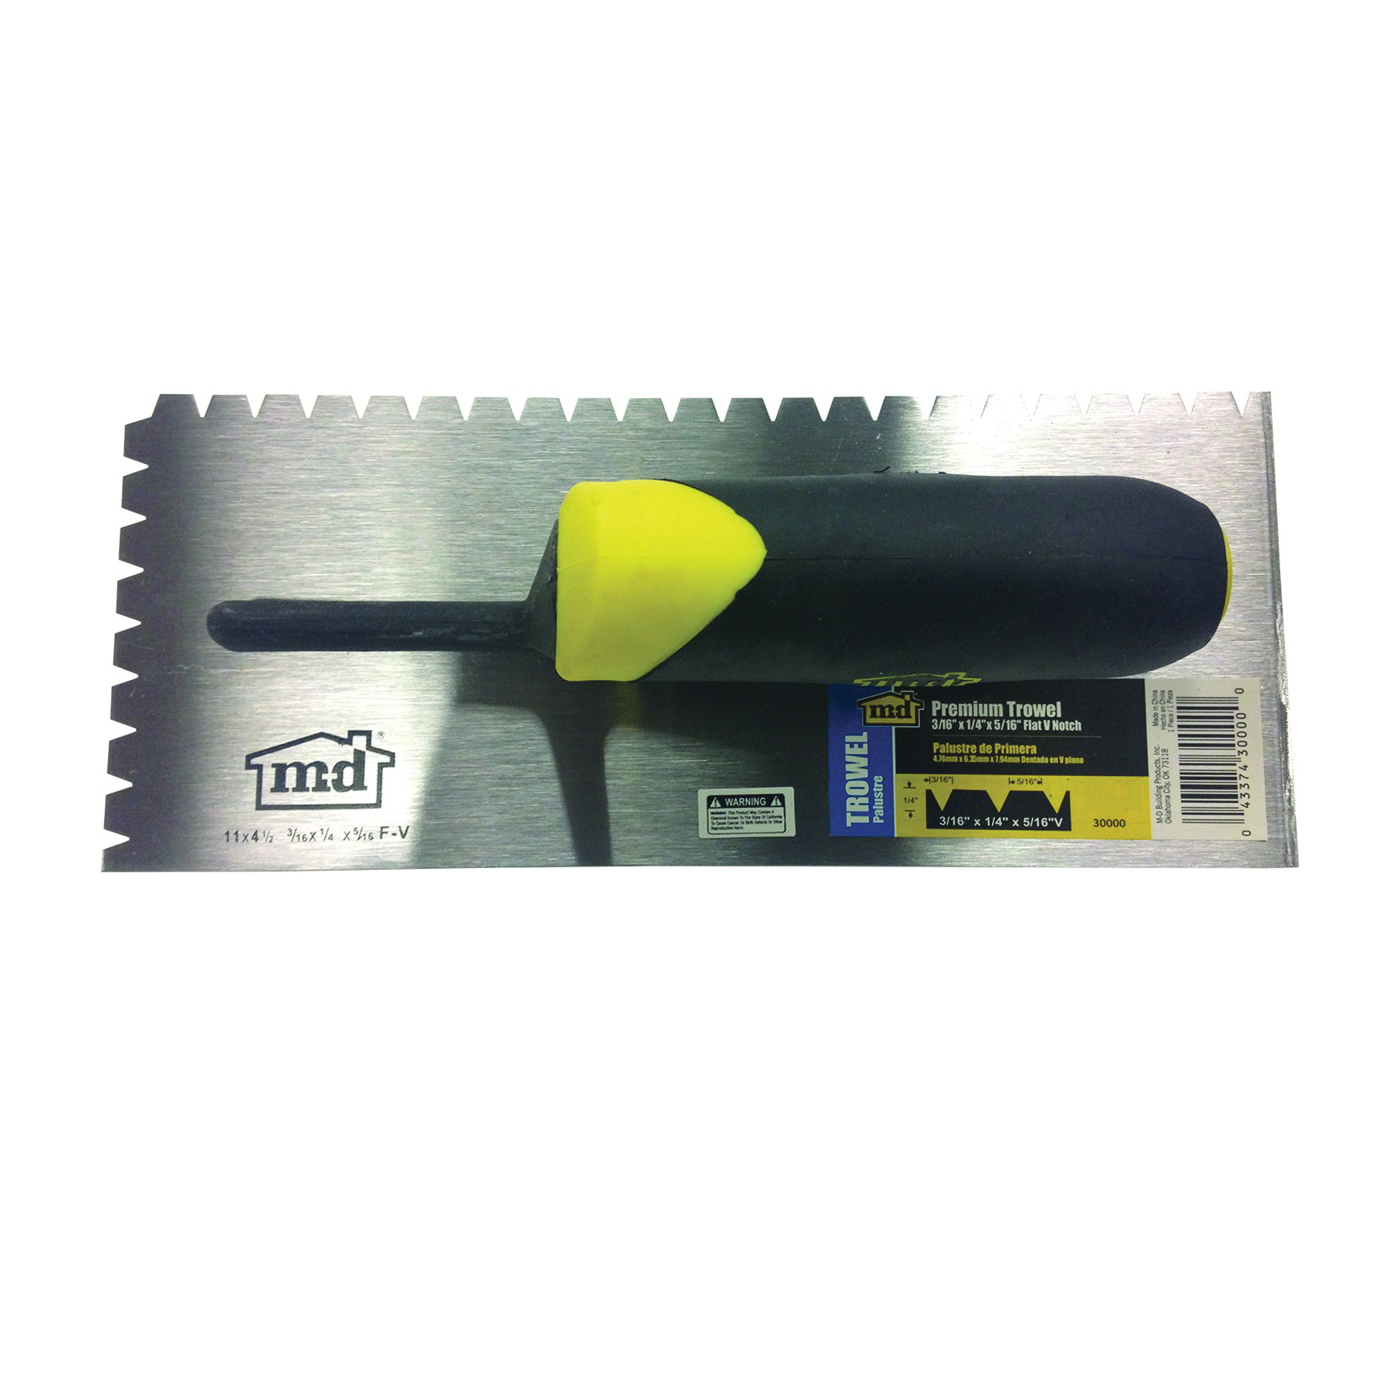 Picture of M-D 30000 Tile Installation Trowel, 11 in L, 4-1/2 in W, Flat V Notch, Comfort-Grip Handle